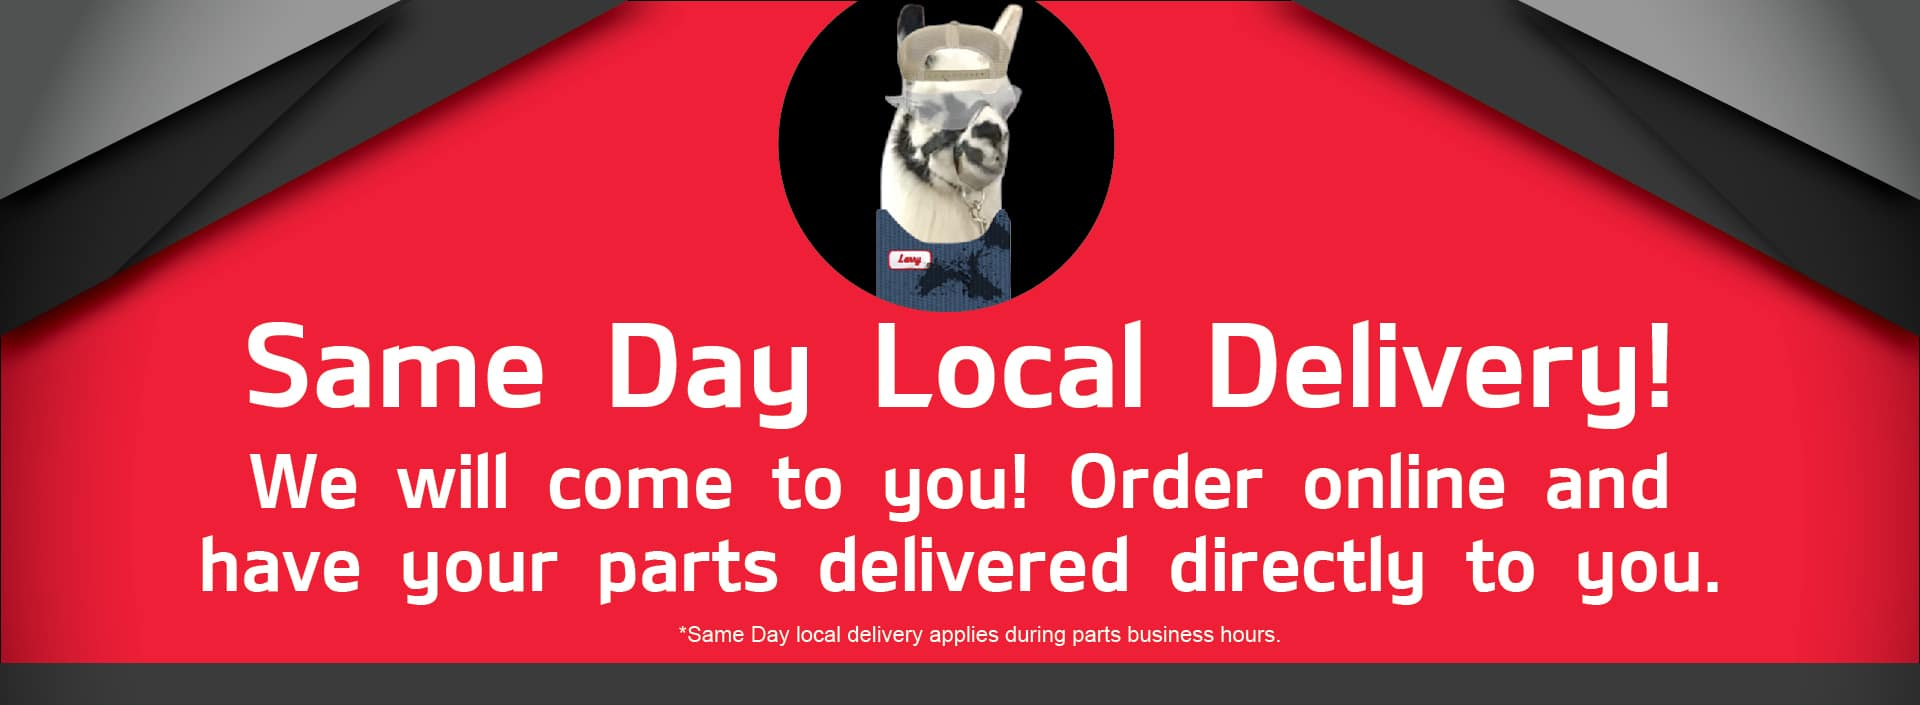 same day local delivery